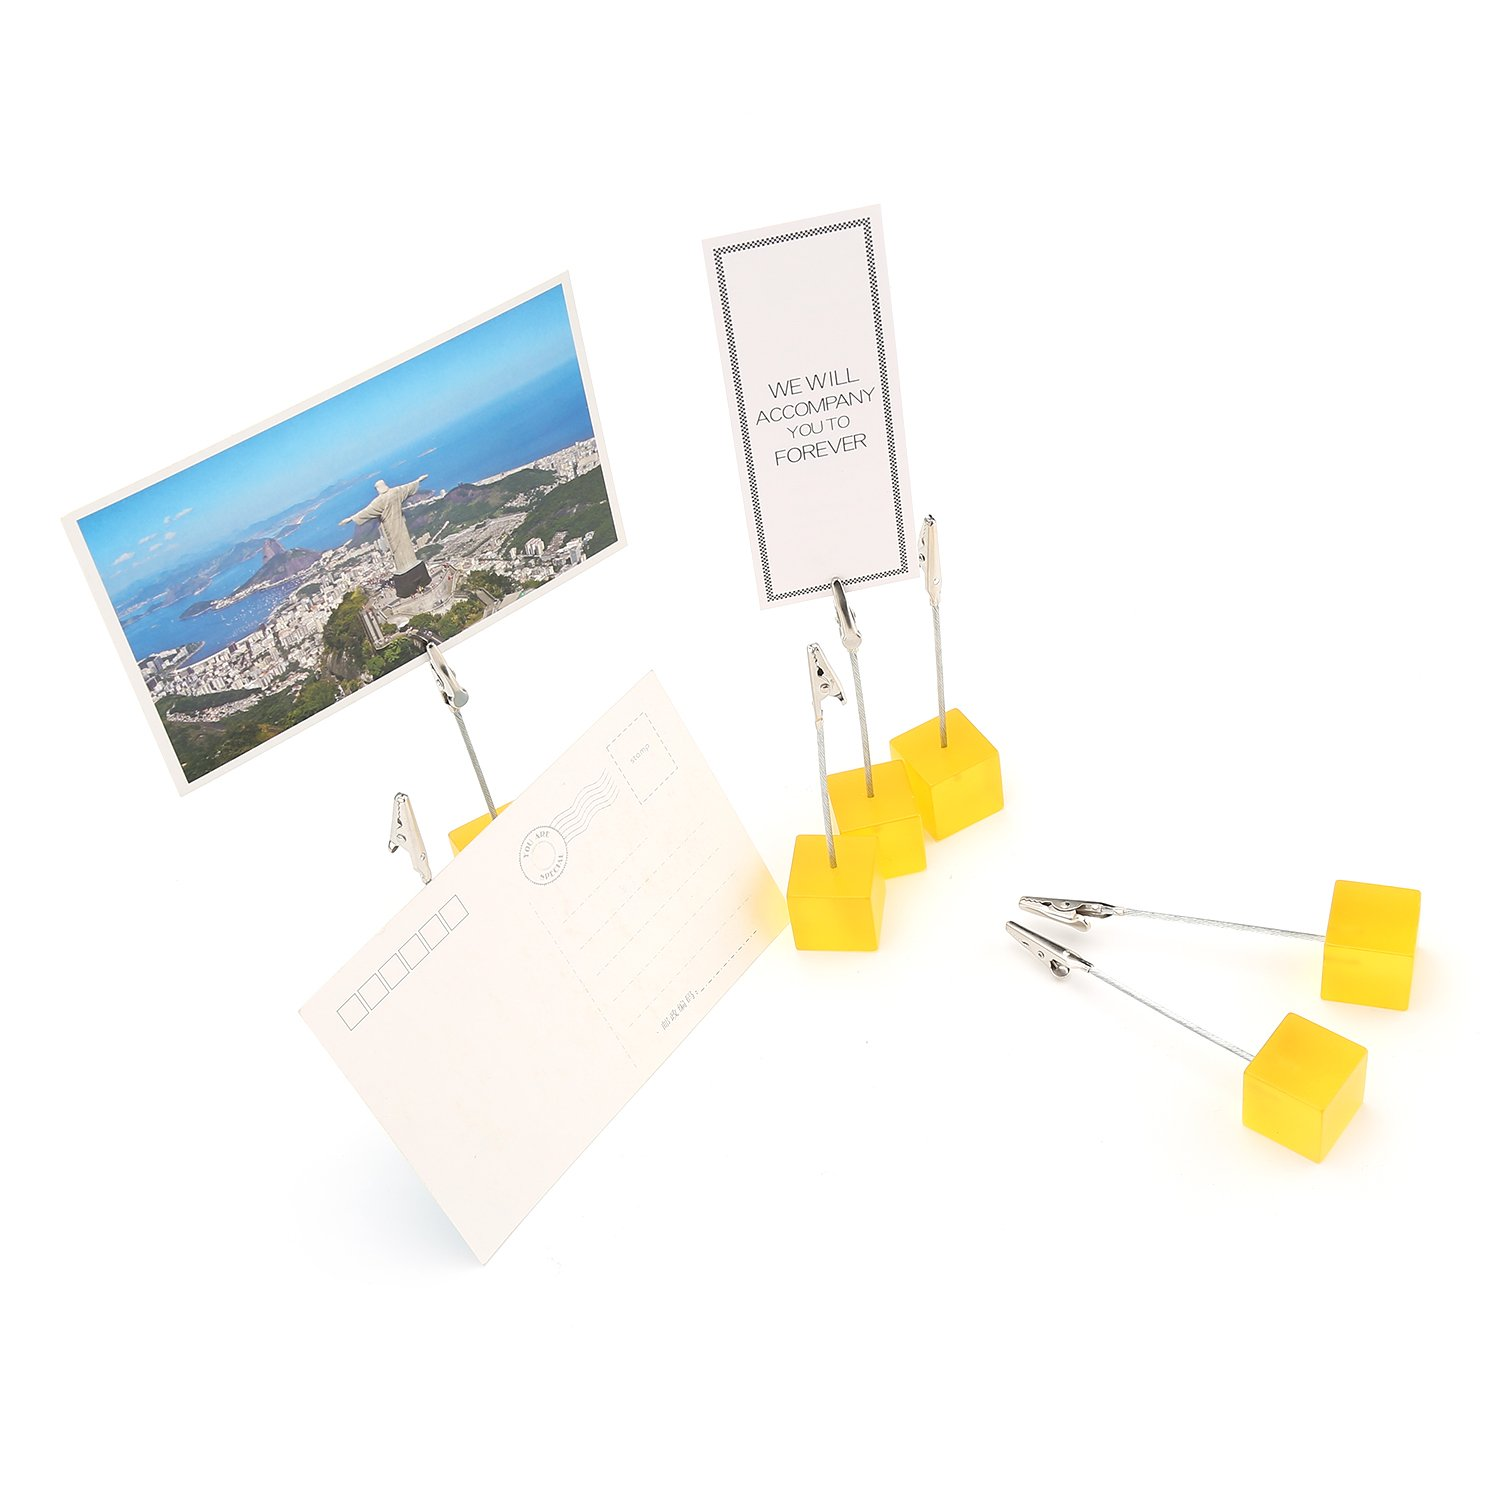 LATH.PIN Table Number Holder Photo Name Place Card Picture Memo Note Paper Menu Clip Stand 7 Packs 7 Packs Black